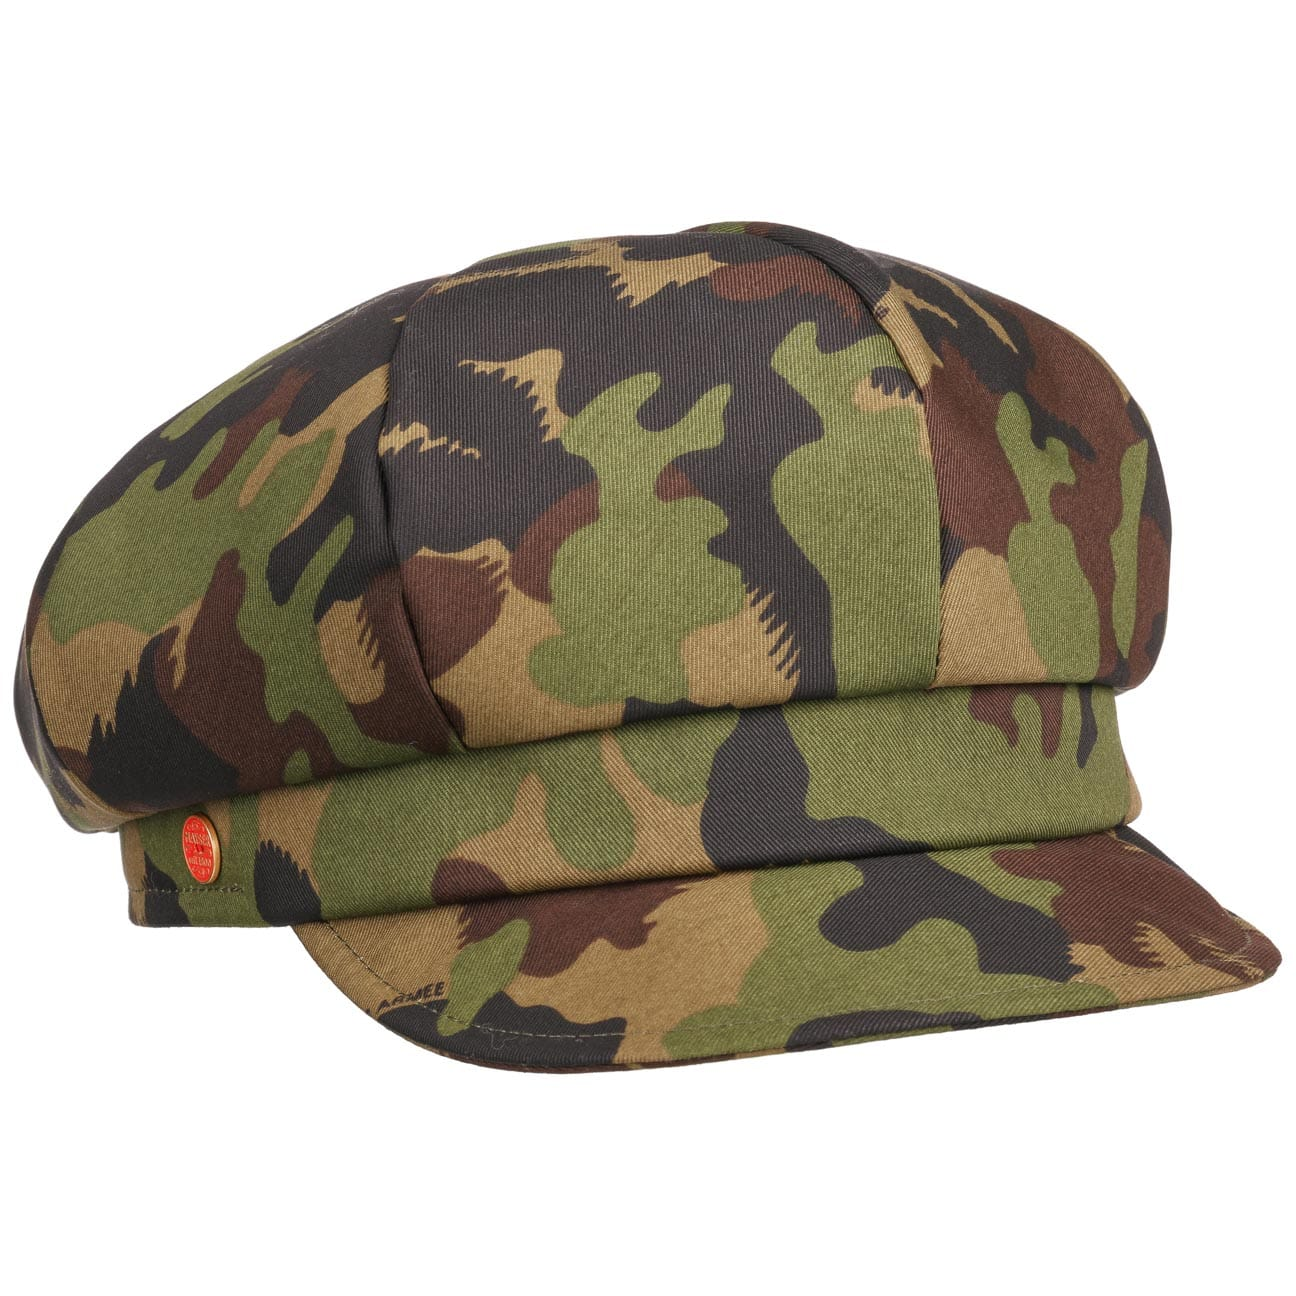 Casquette Gavroche Anja Camouflage by Mayser  casquette baker boy